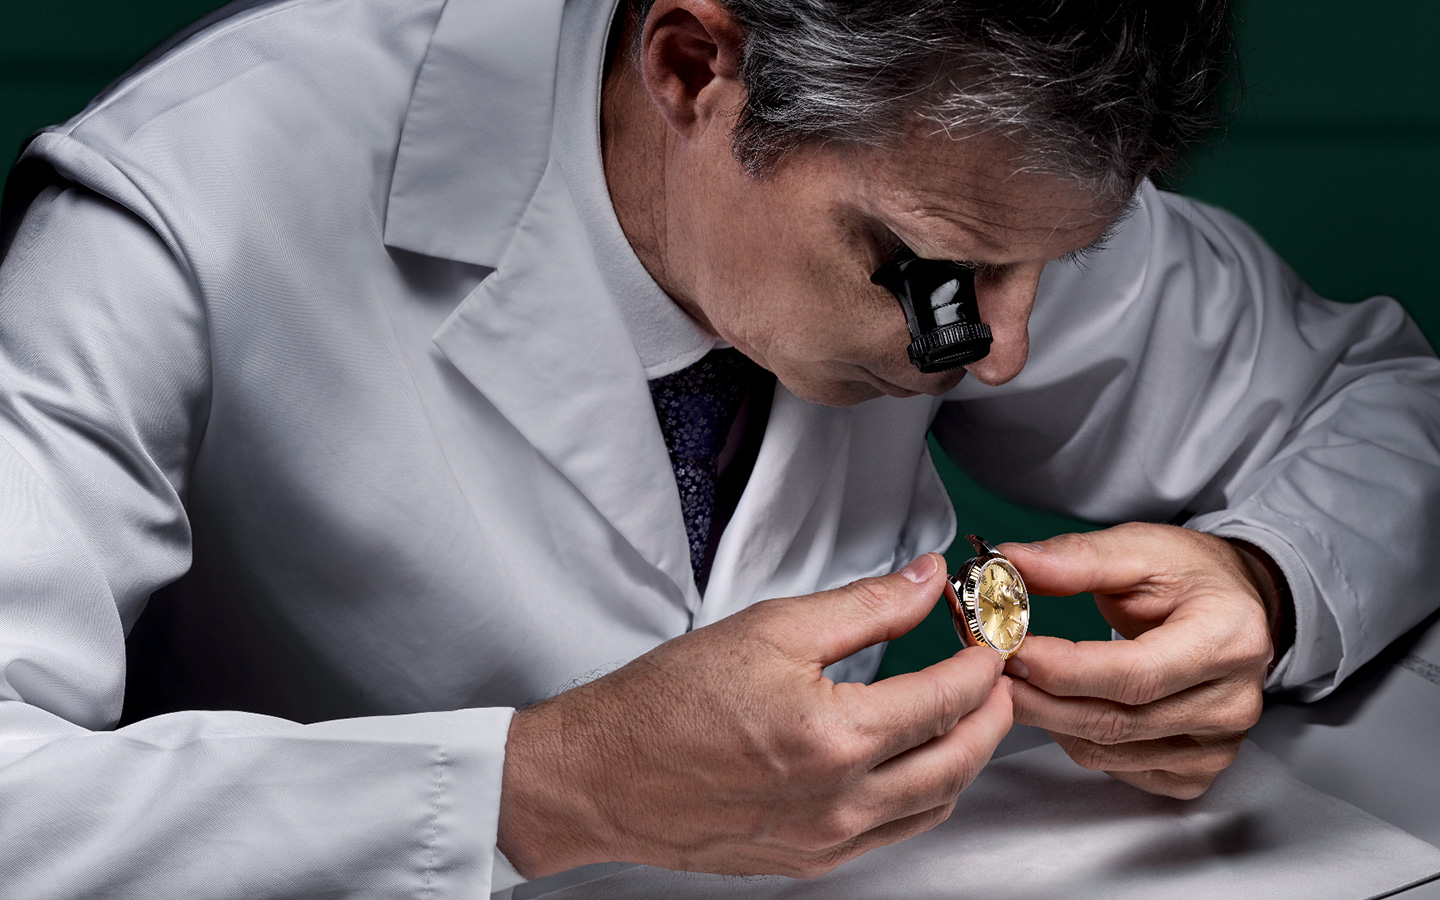 SERVICING YOUR ROLEX AT DURÁN JOYEROS